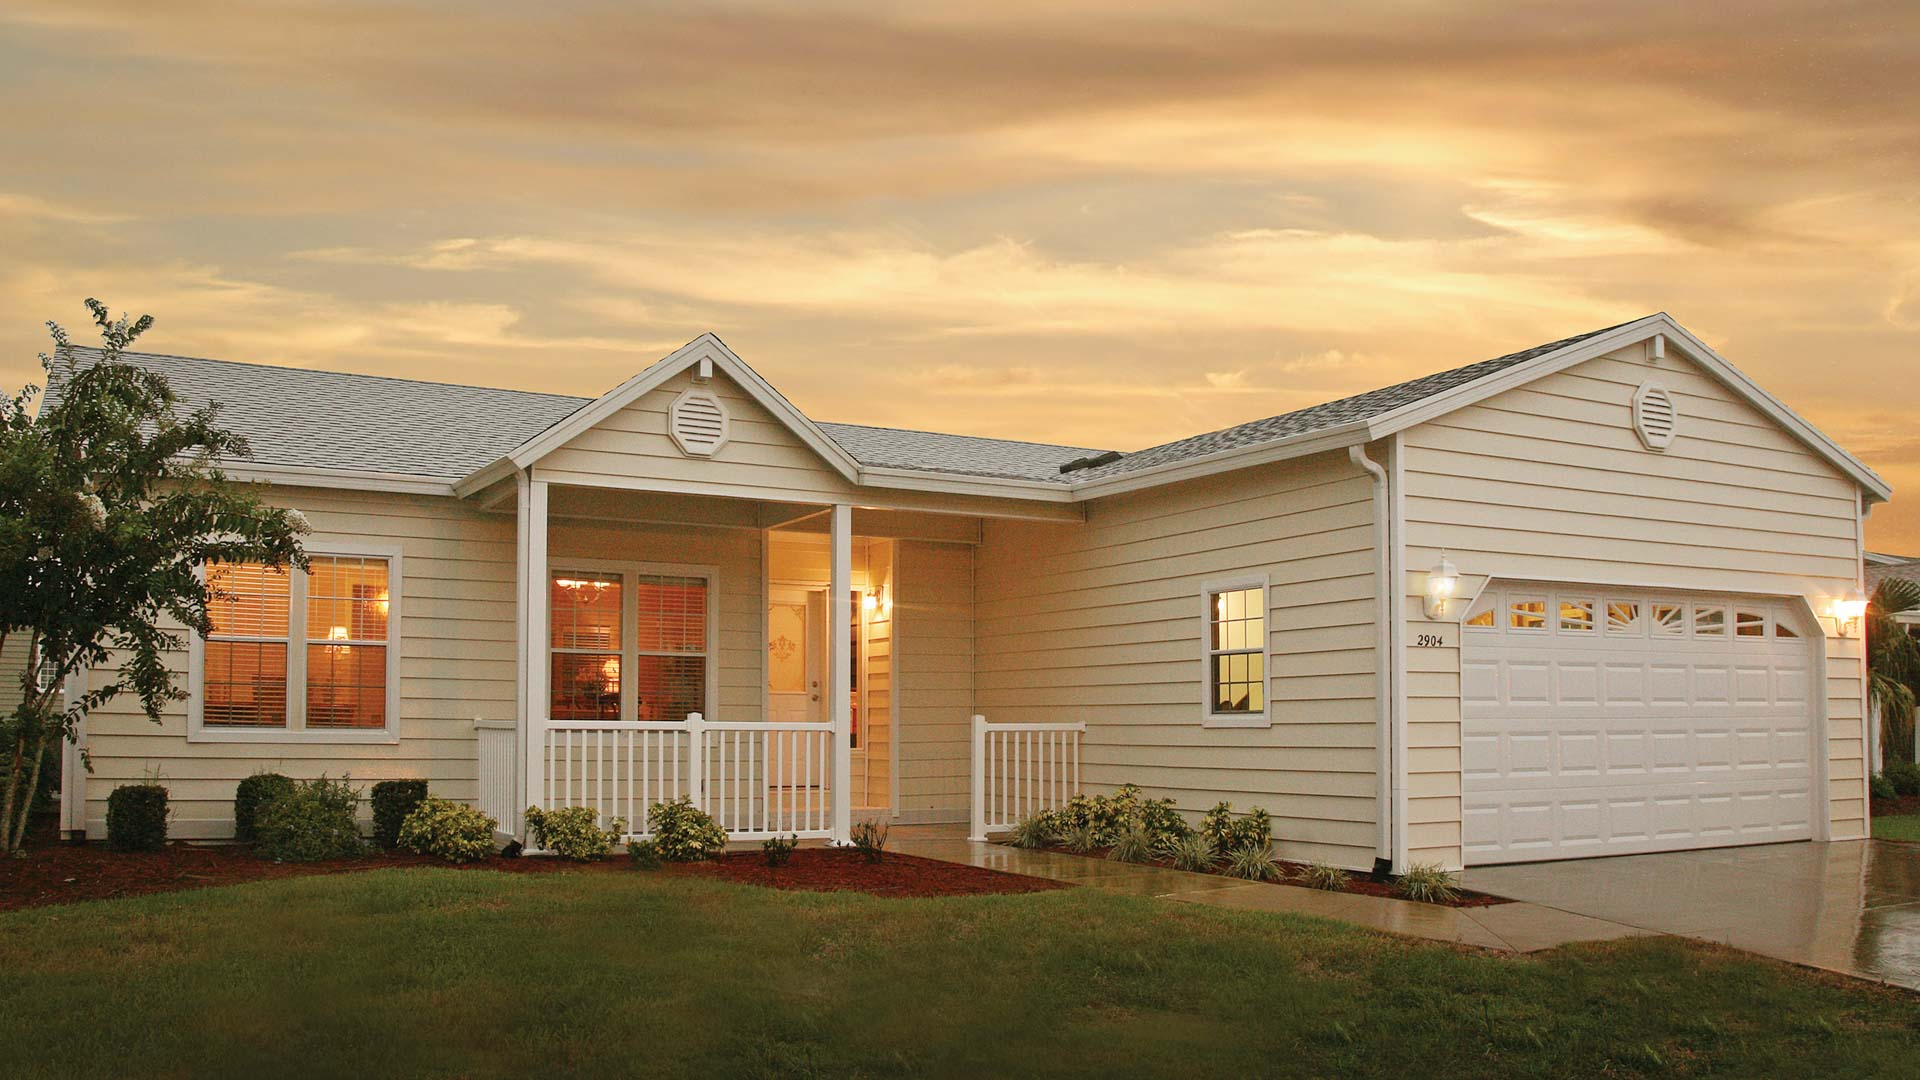 Riverside Club 55+ Golf, Marina and Manufactured Homes Community Residence 2904 in Ruskin, FL